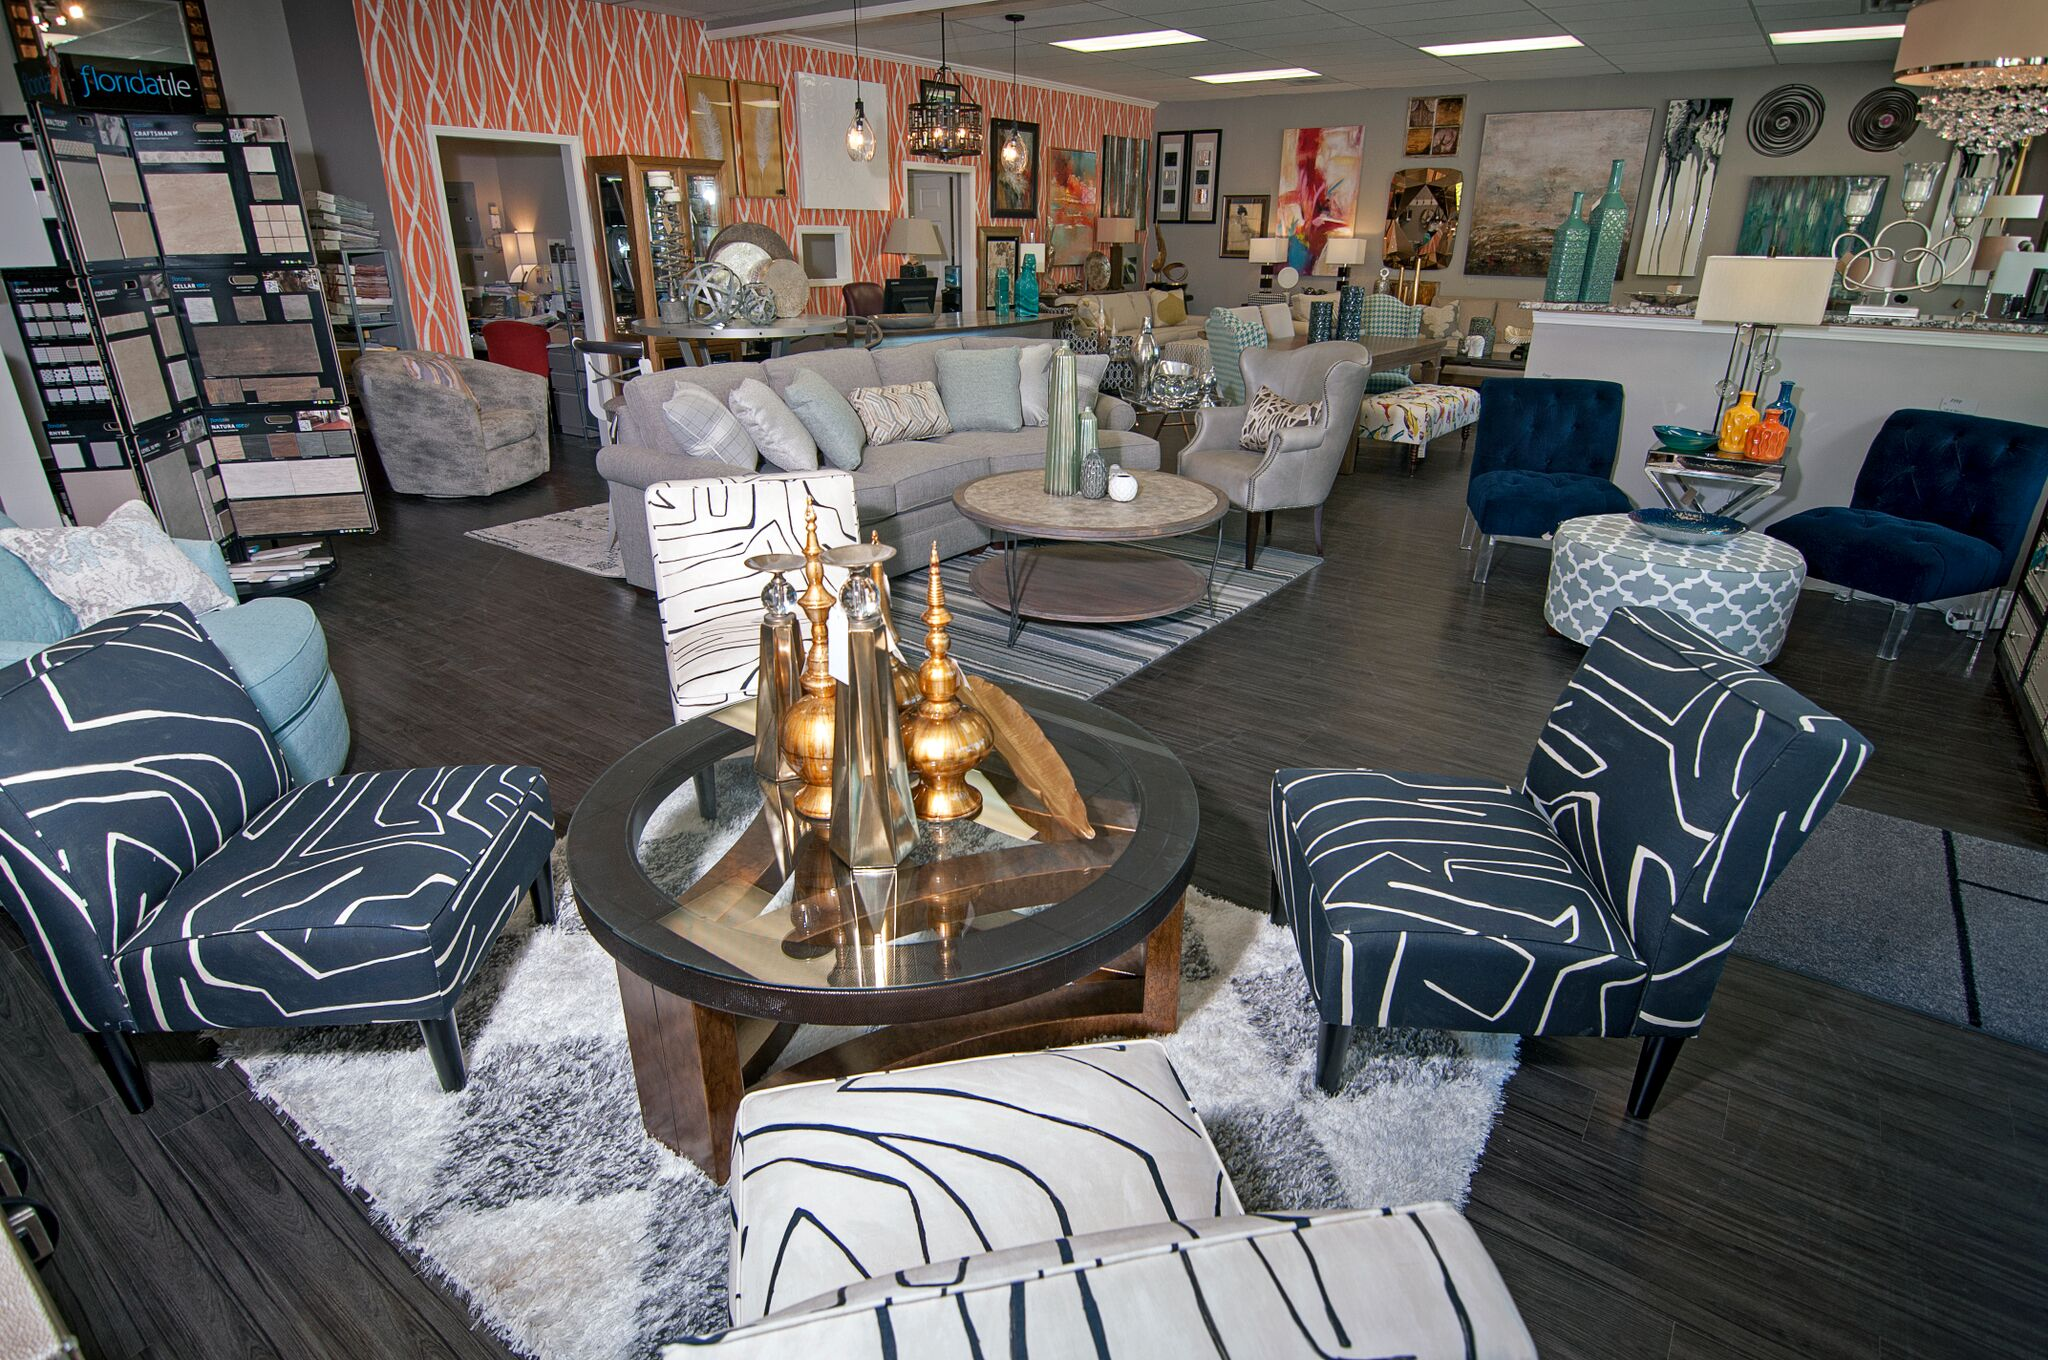 Carrelli Interior Design offers design and color consultation, furniture, art, accessories, lighting, carpet, flooring, area rugs, window treatments, and fabrics. ADDRESS: 6811 Harrison Avenue, Suite A (45247) / Image: Christopher Andrew Rumer // Published: 8.22.17